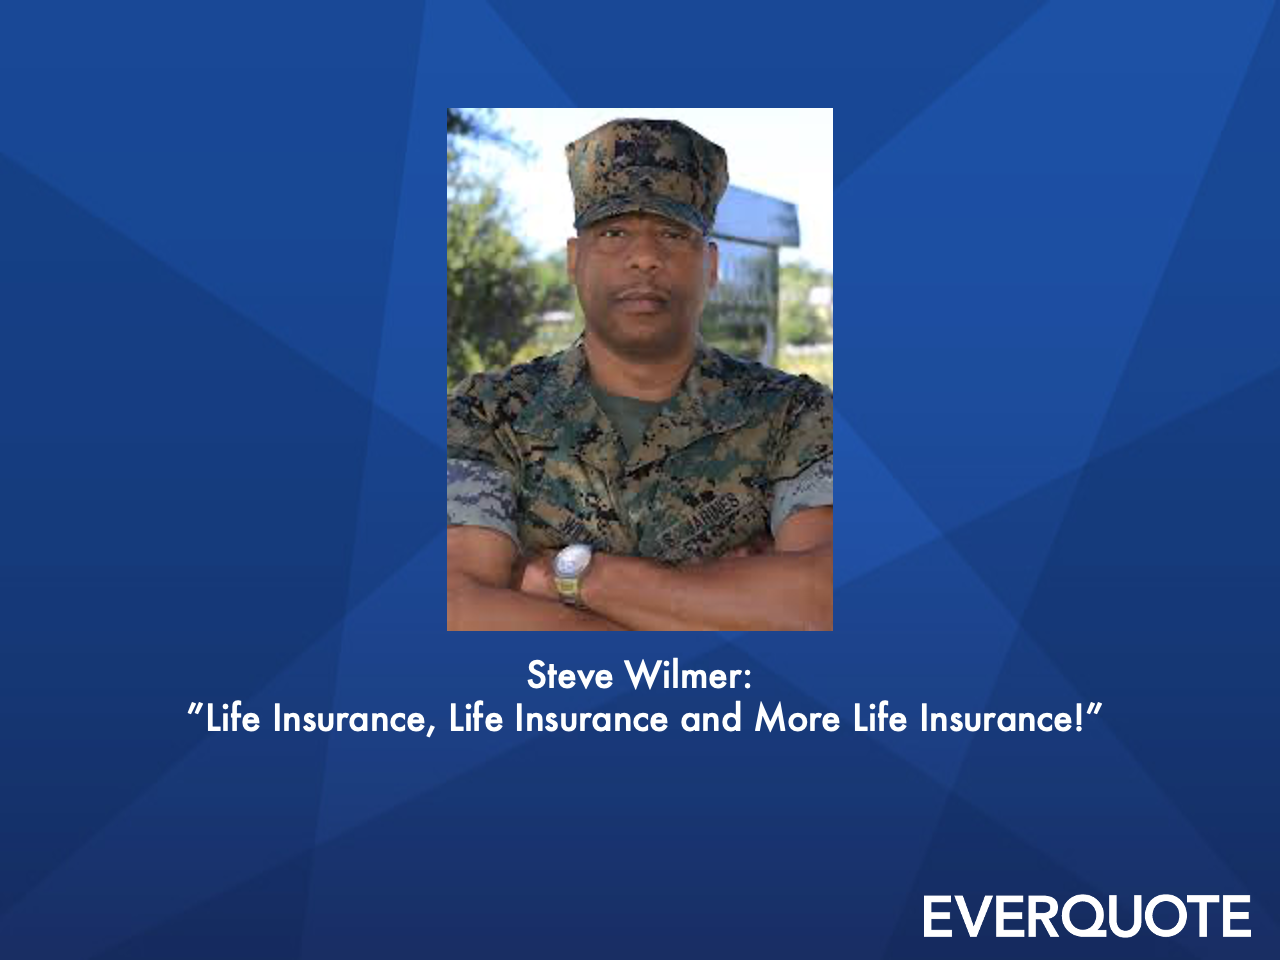 Life Insurance, Life Insurance and More Life Insurance! with Steve Wilmer